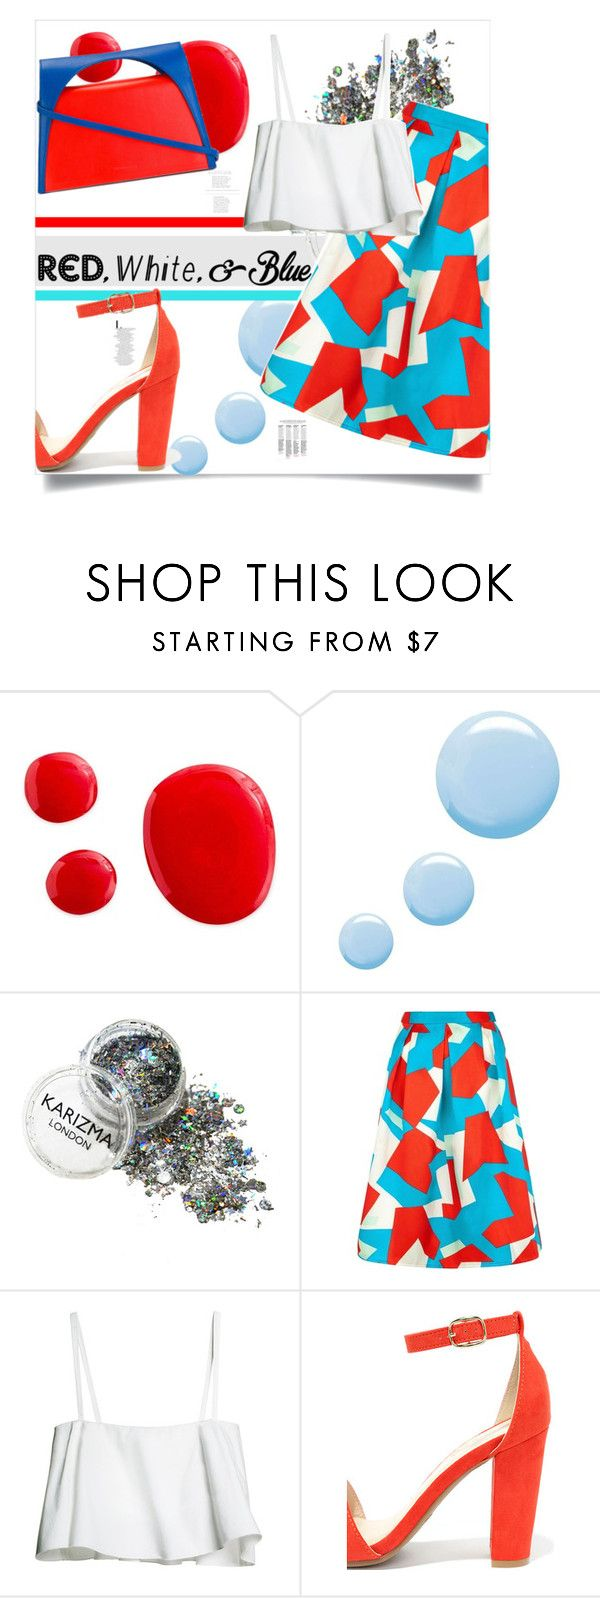 """""""Untitled #287"""" by tellmeverything ❤ liked on Polyvore featuring Topshop, Traffic People, Bamboo, J.W. Anderson, redwhiteandblue and july4th"""